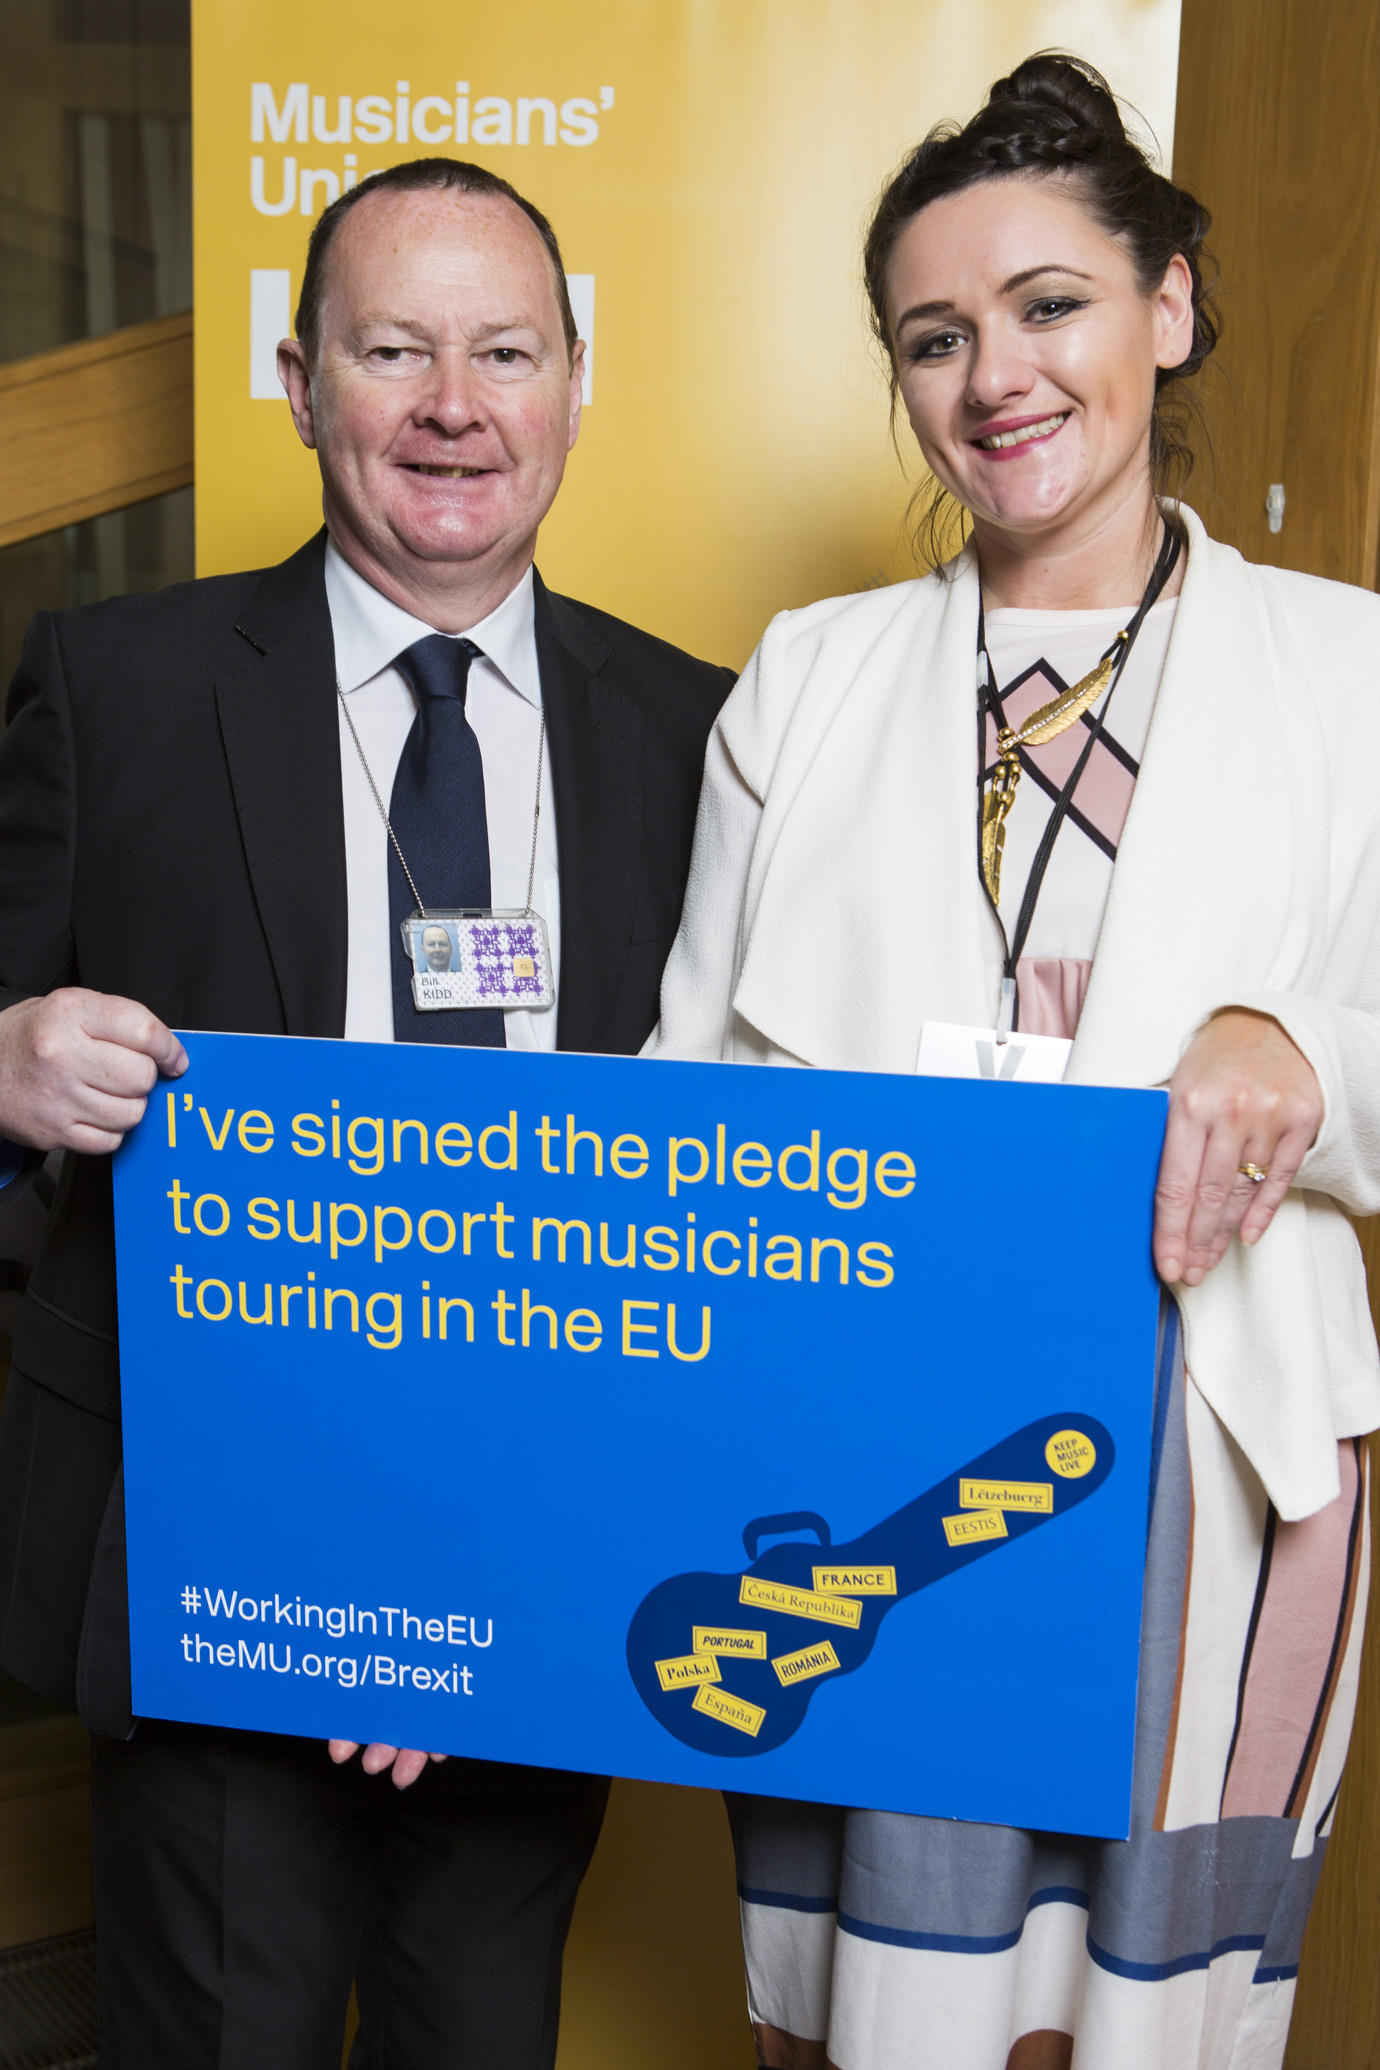 Music Union Brexit and Free Travel